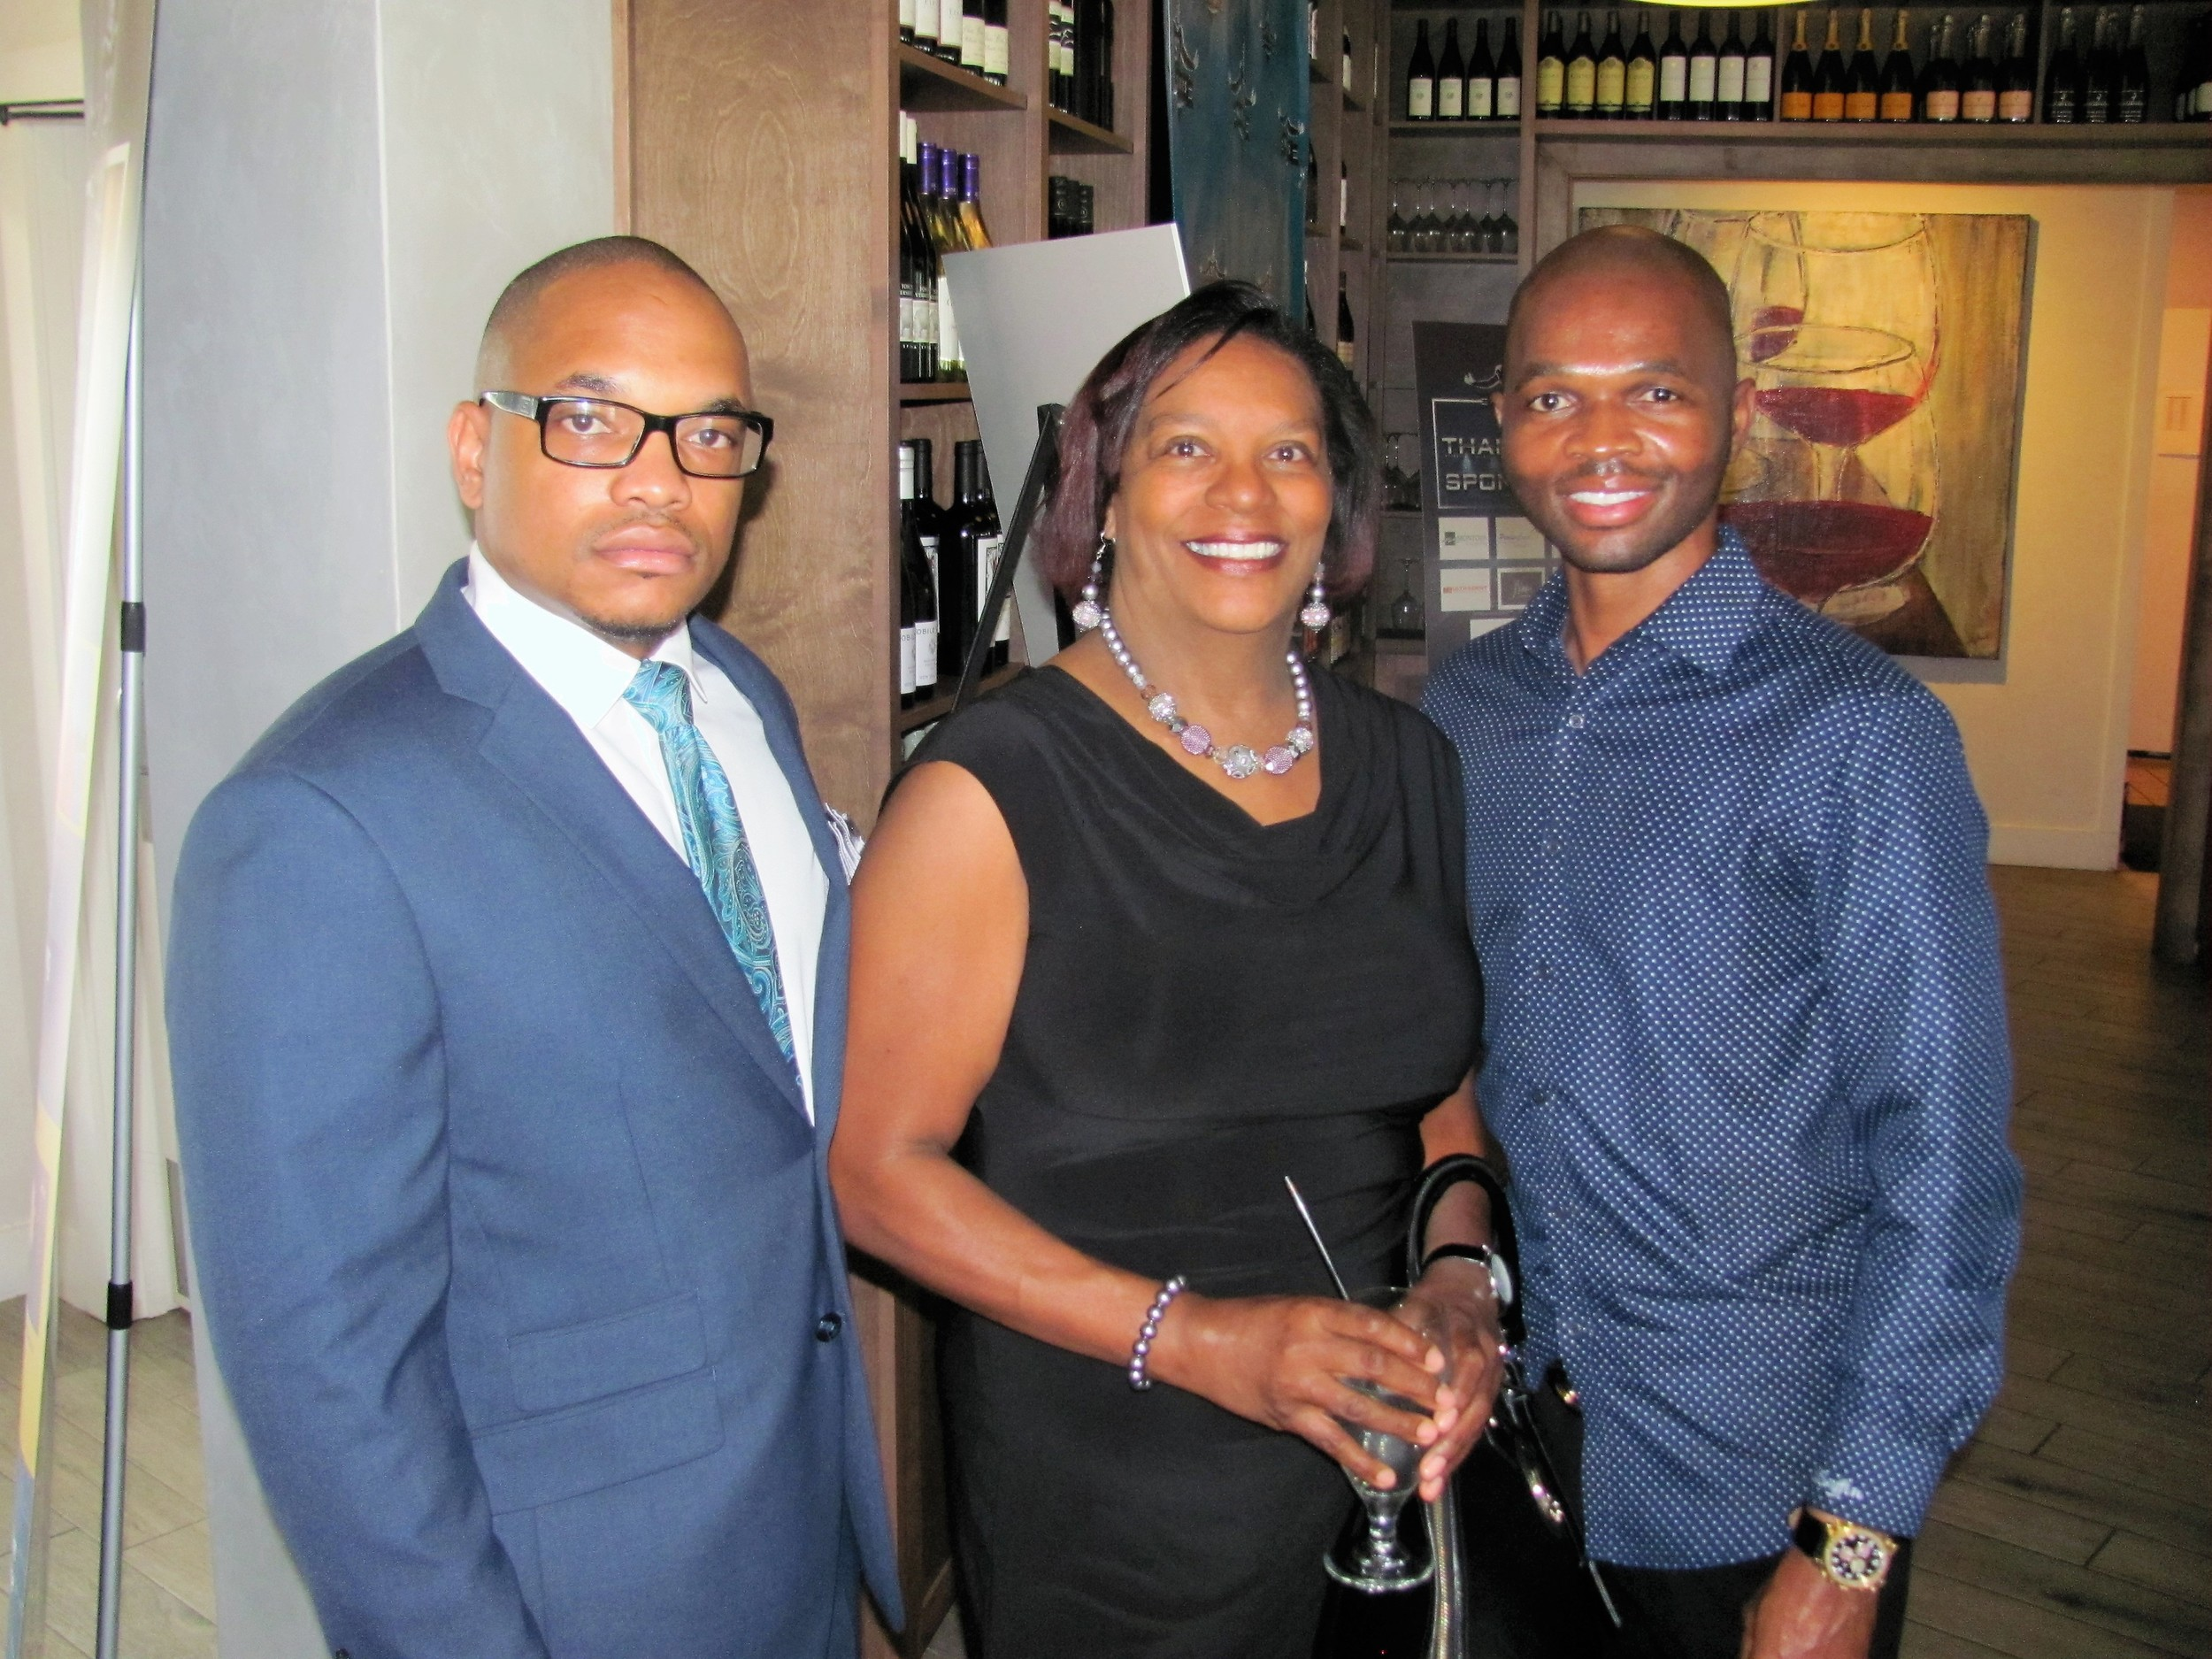 Howard Edwards, Pam Denson and Cedric Griffin